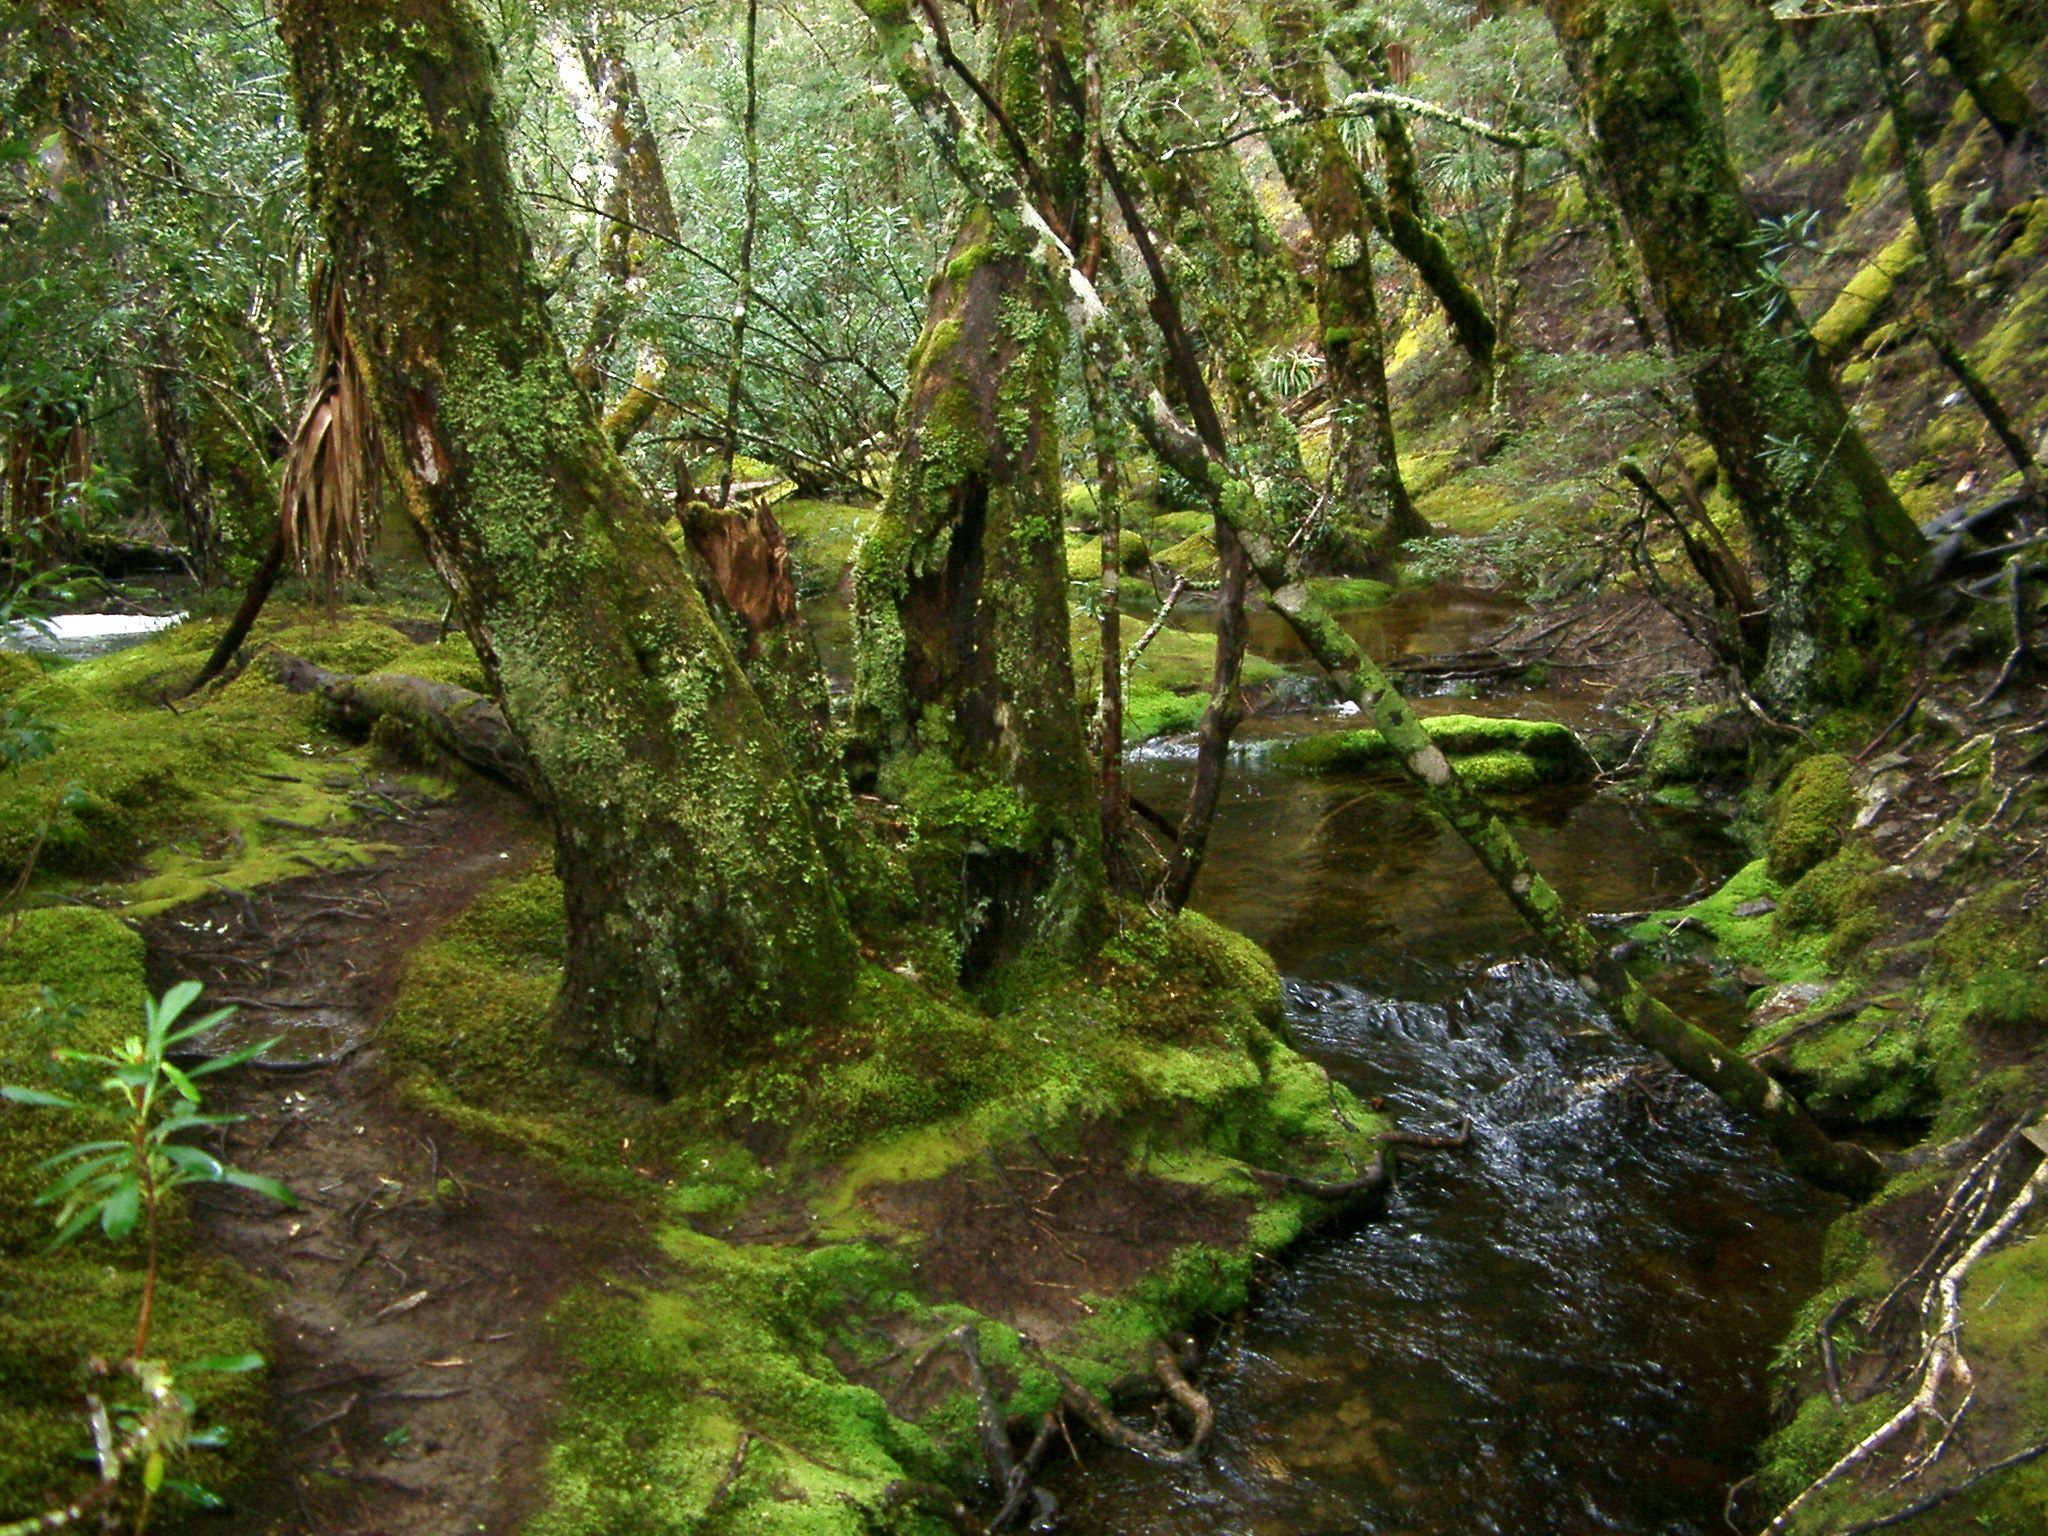 Misty Green Forest Nature River Beautiful 1ziw: How Beautiful! I Expect To See Gandolf Or Frodo Walk Out